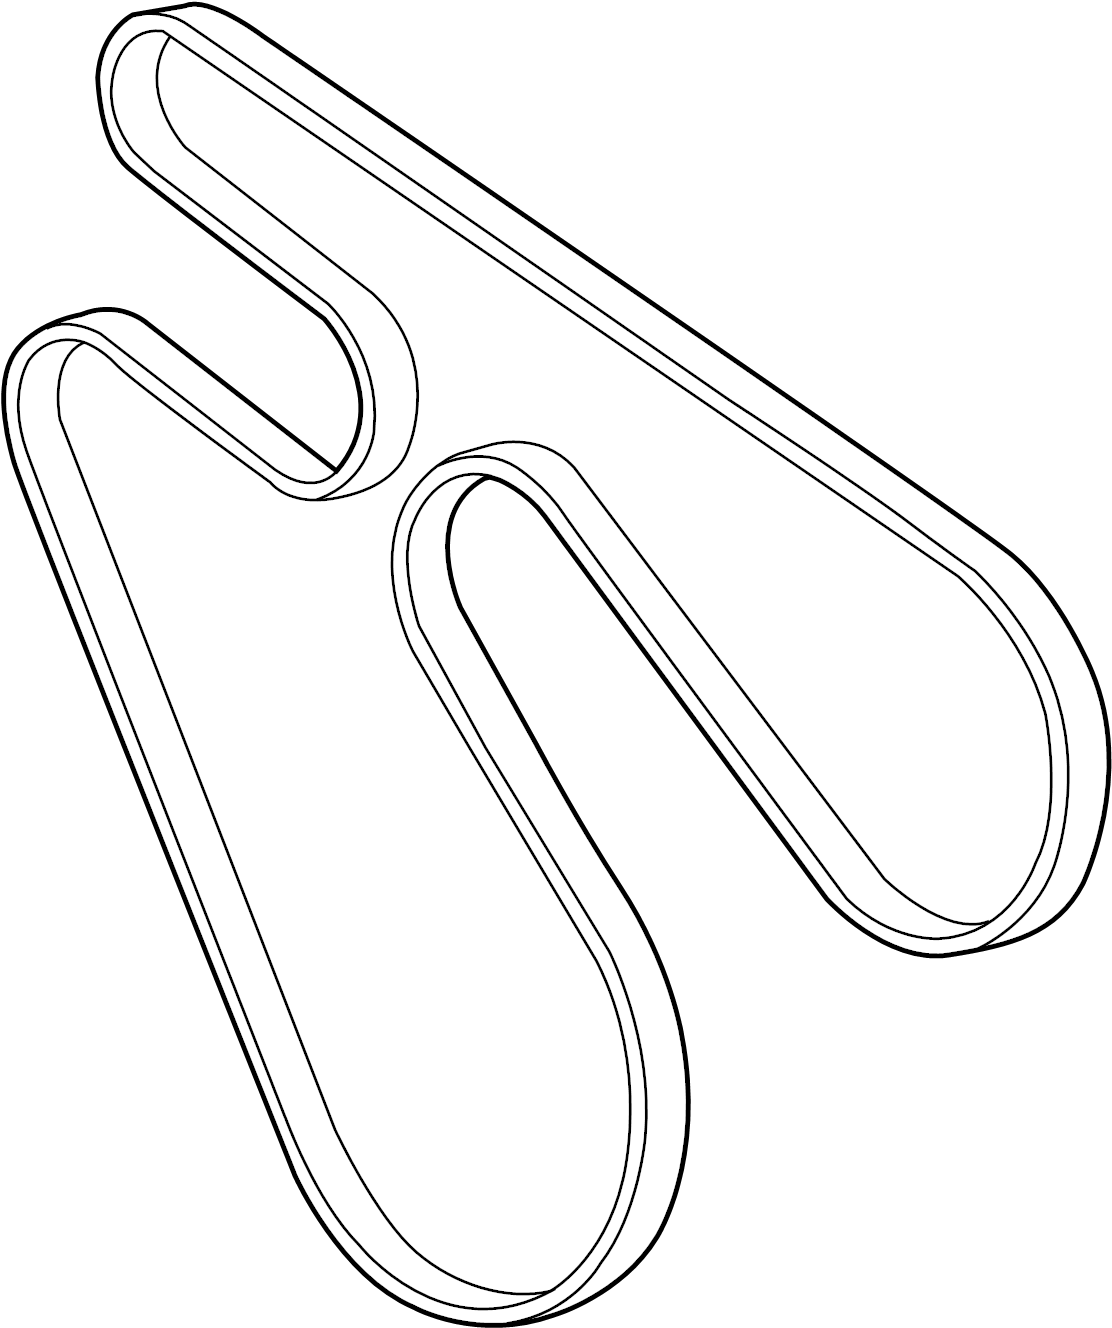 Chevrolet Silverado Serpentine Belt